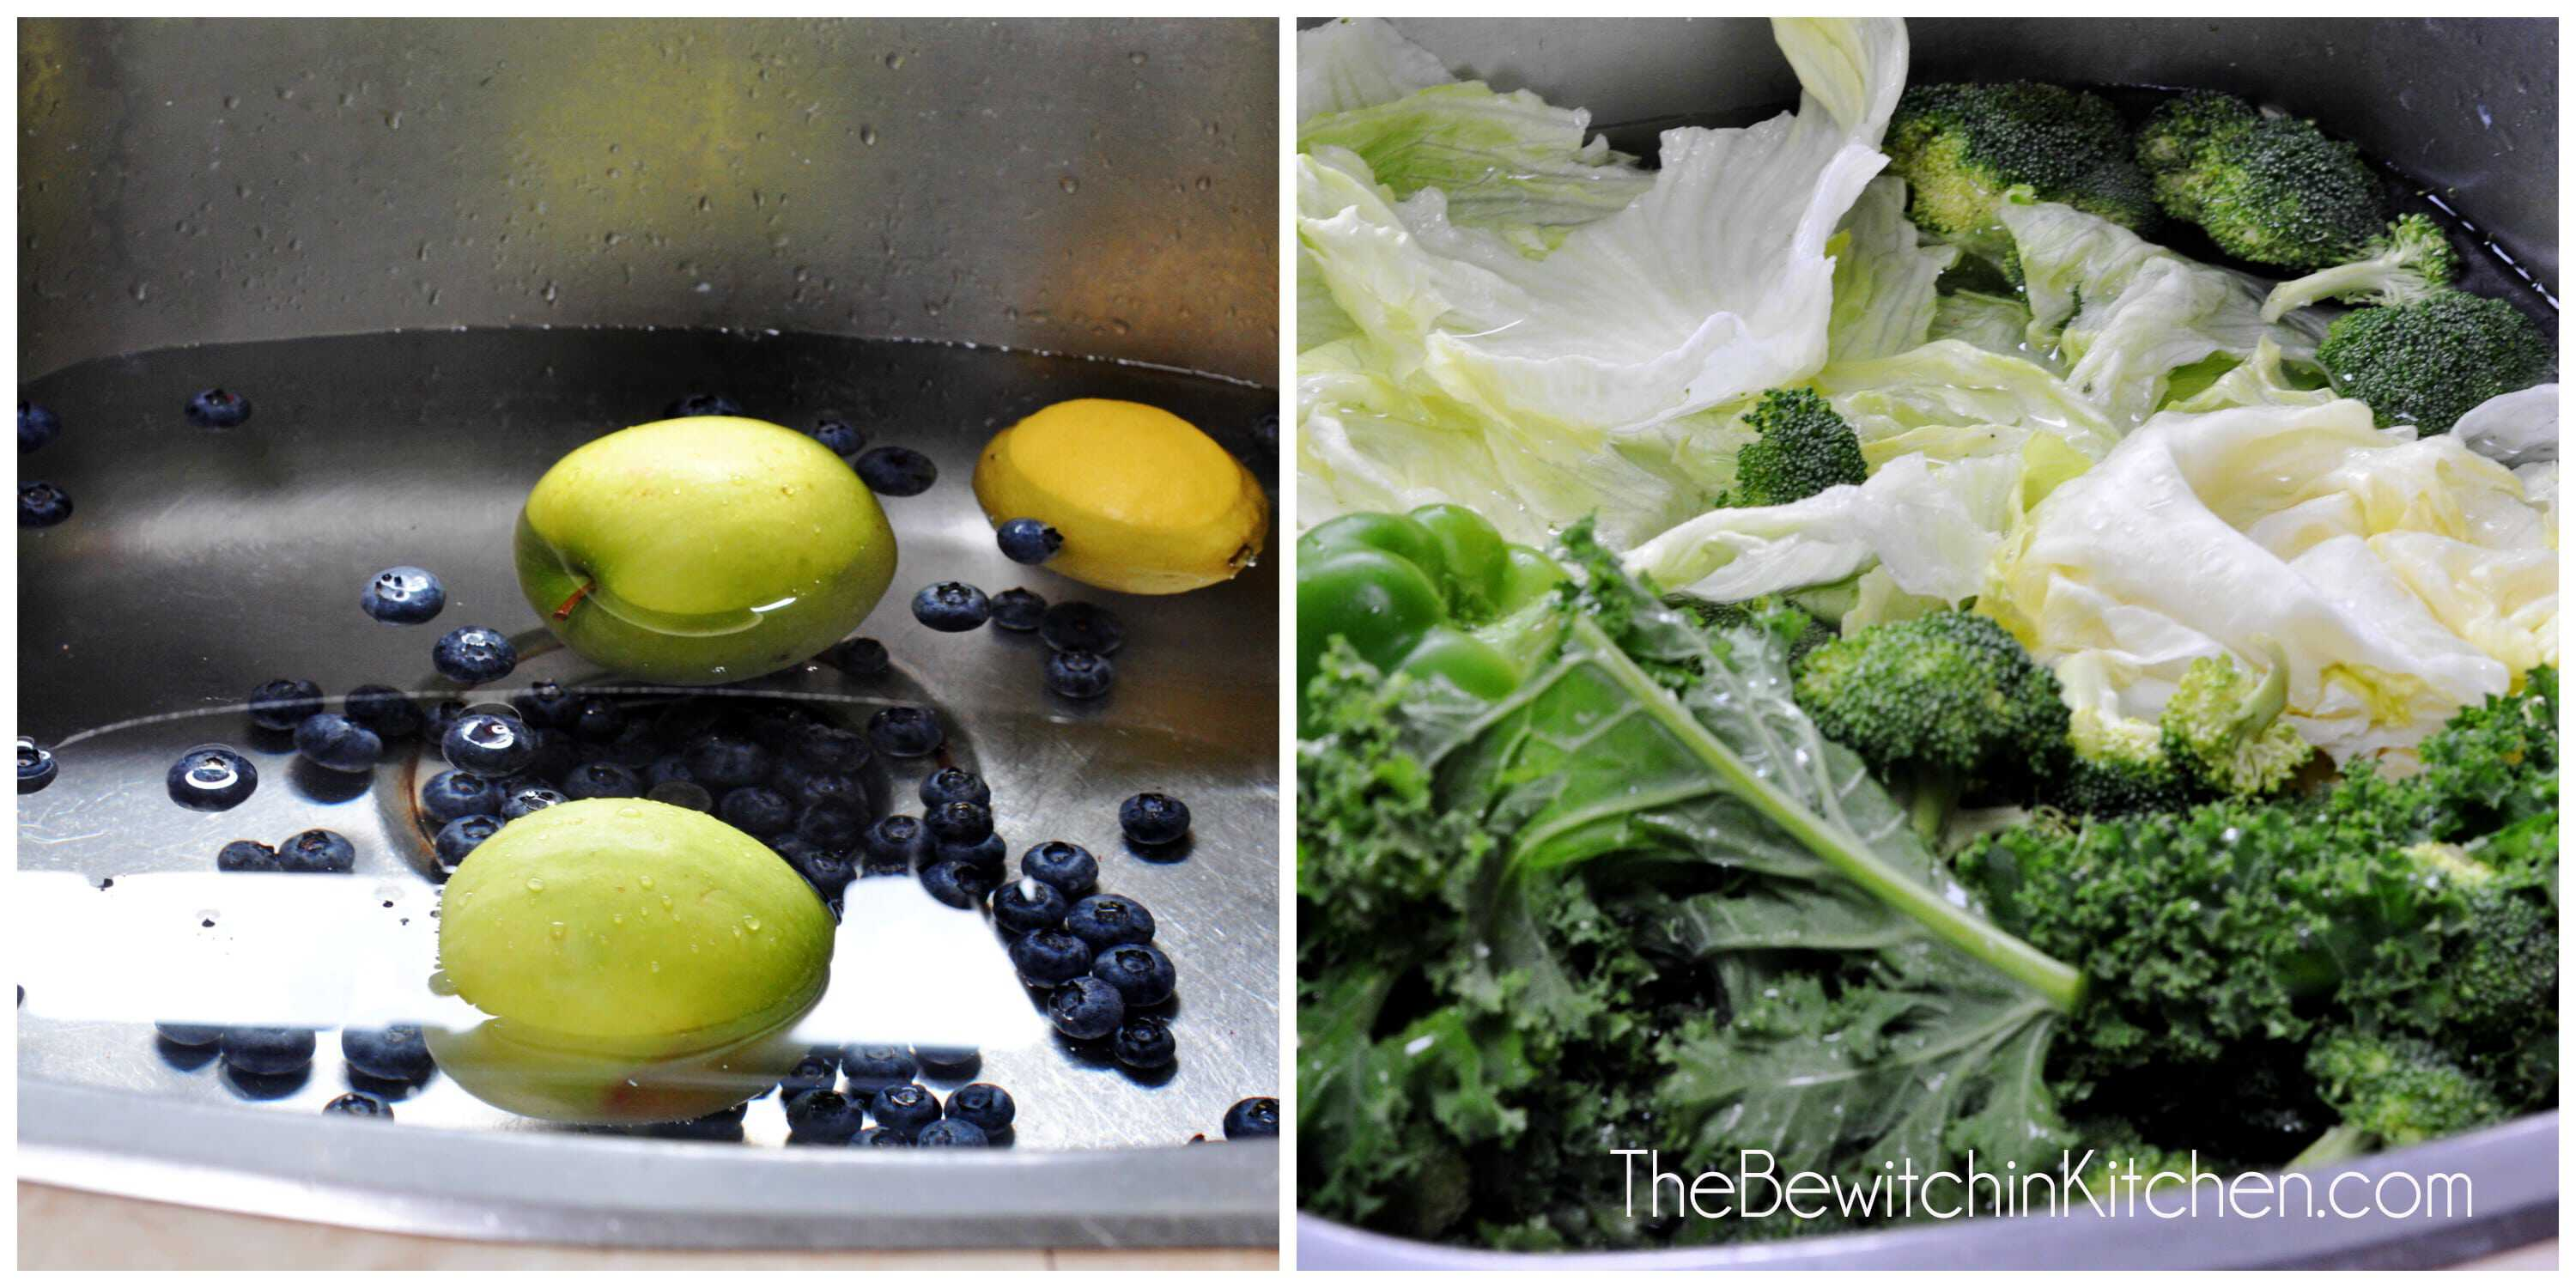 How to wash your fruits and vegetables